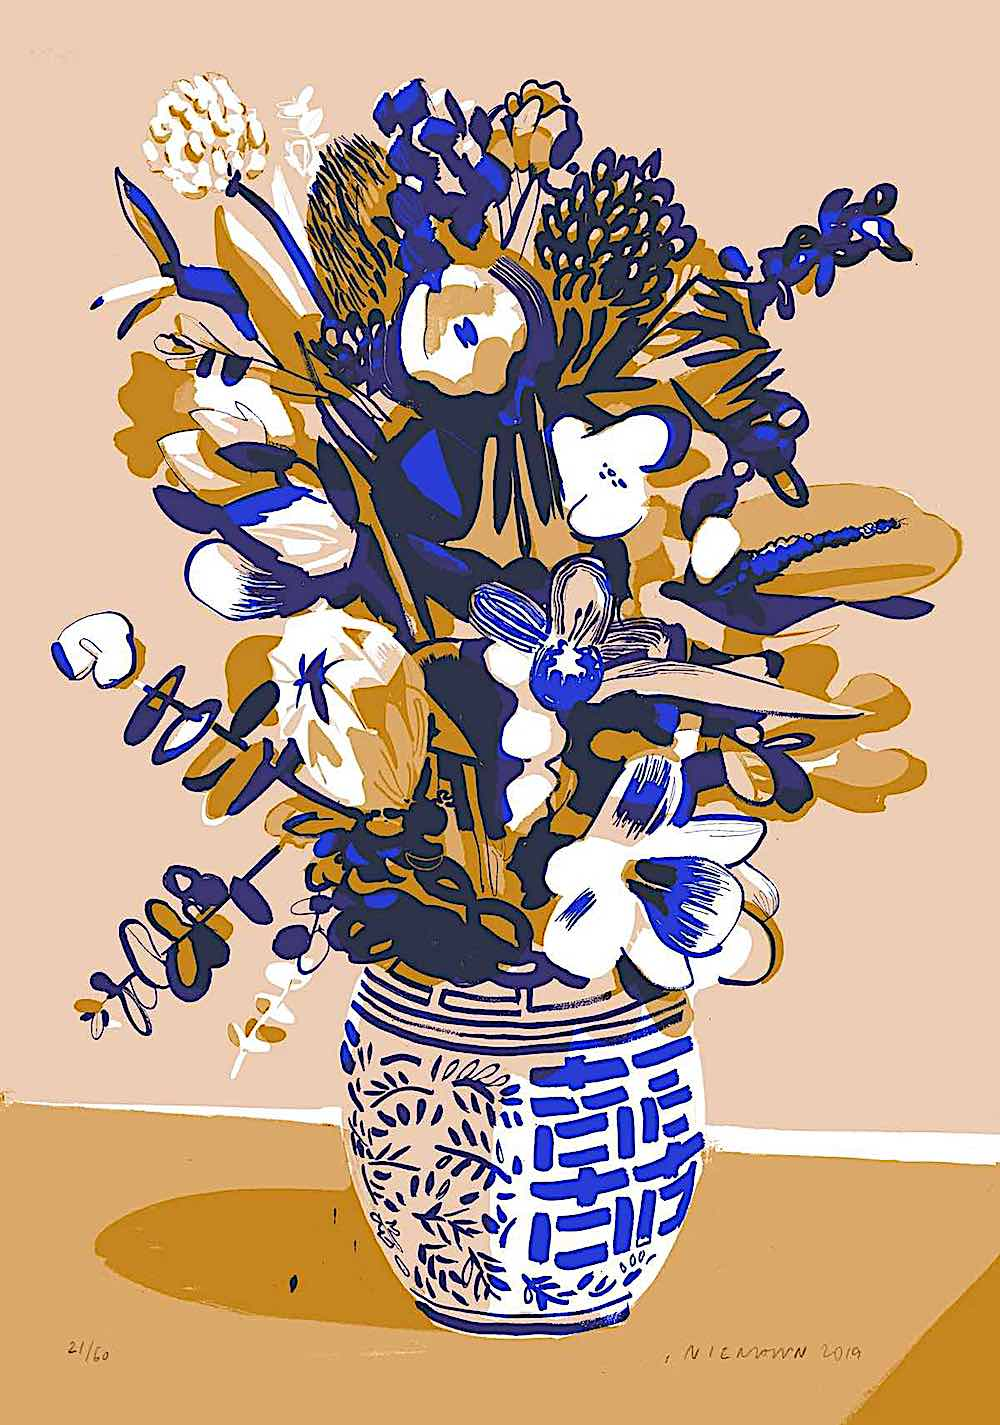 Christoph Niemann art, flowers in a vase in blue and tan colors